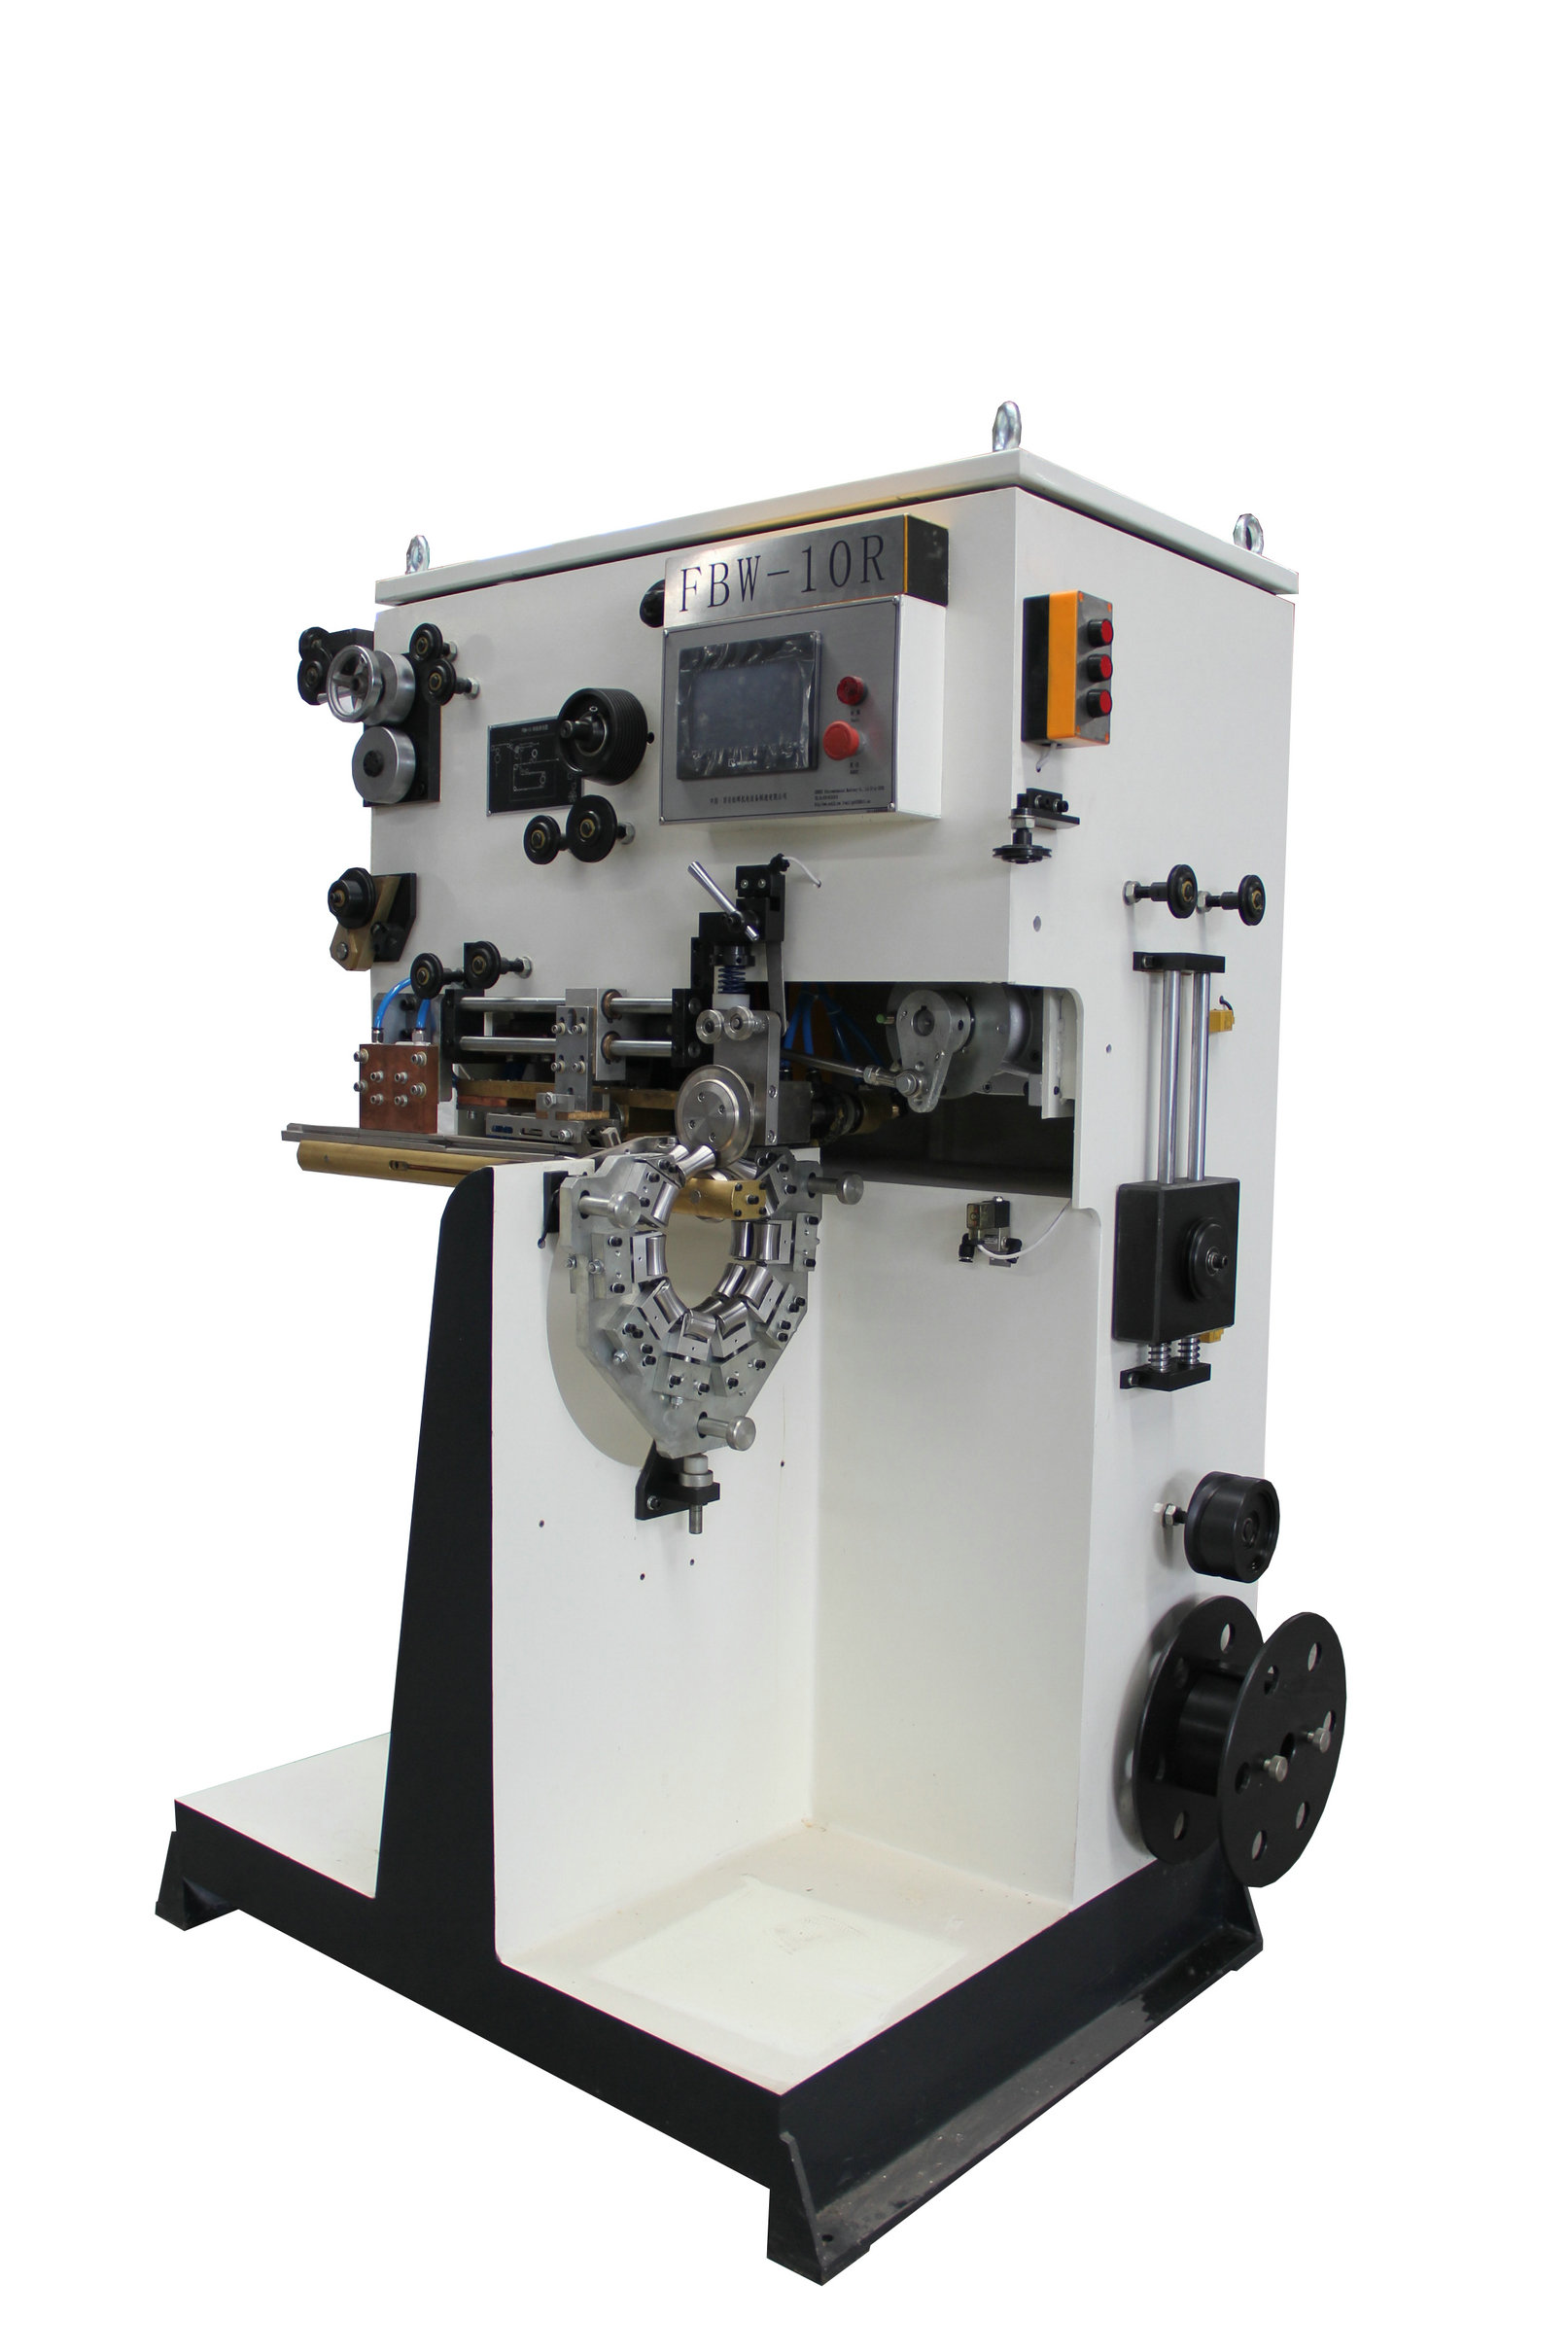 FBW-10R semi-automatic steel drum seam welding machine